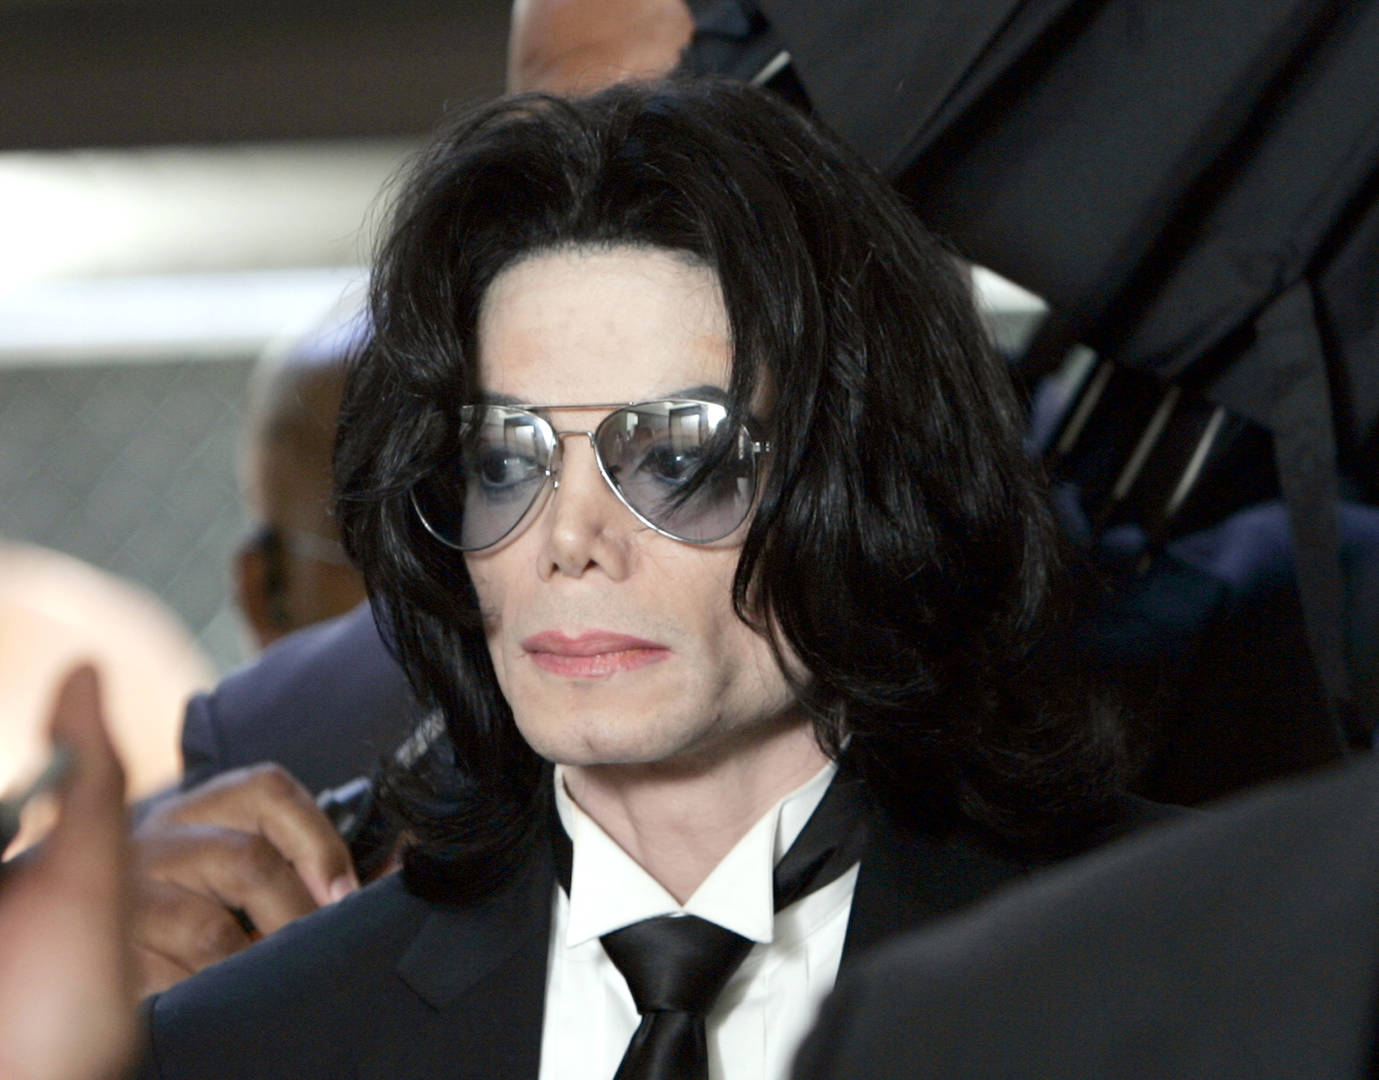 Johnny Depp to make Michael Jackson musical from perspective of his glove